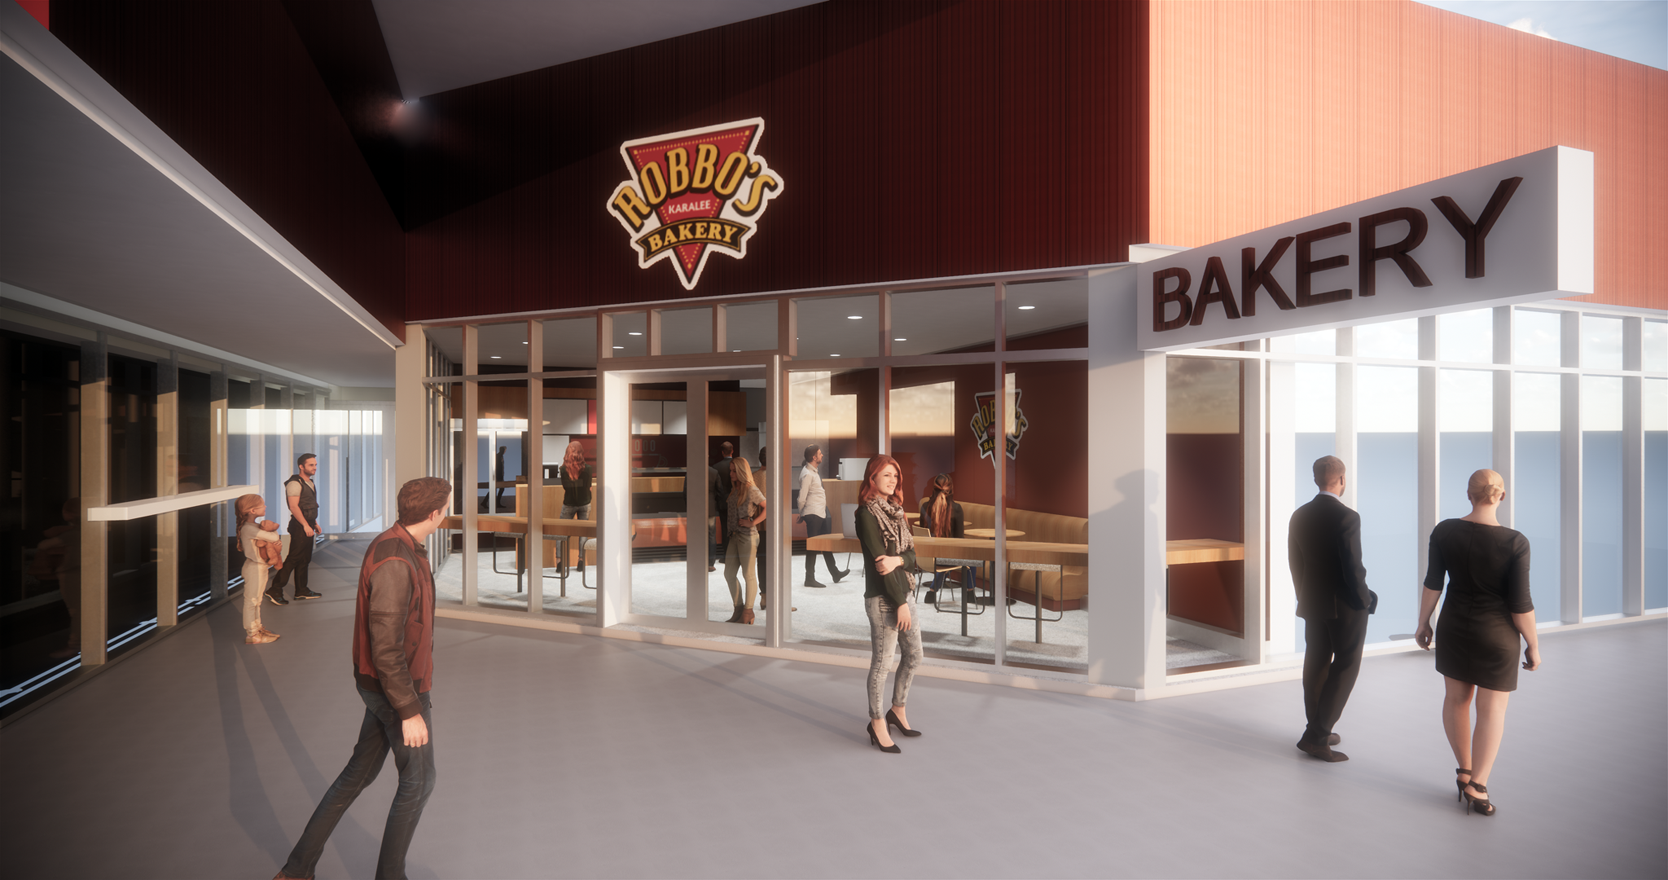 Robbo's Bakery Concept by Birchall & Partners Architects